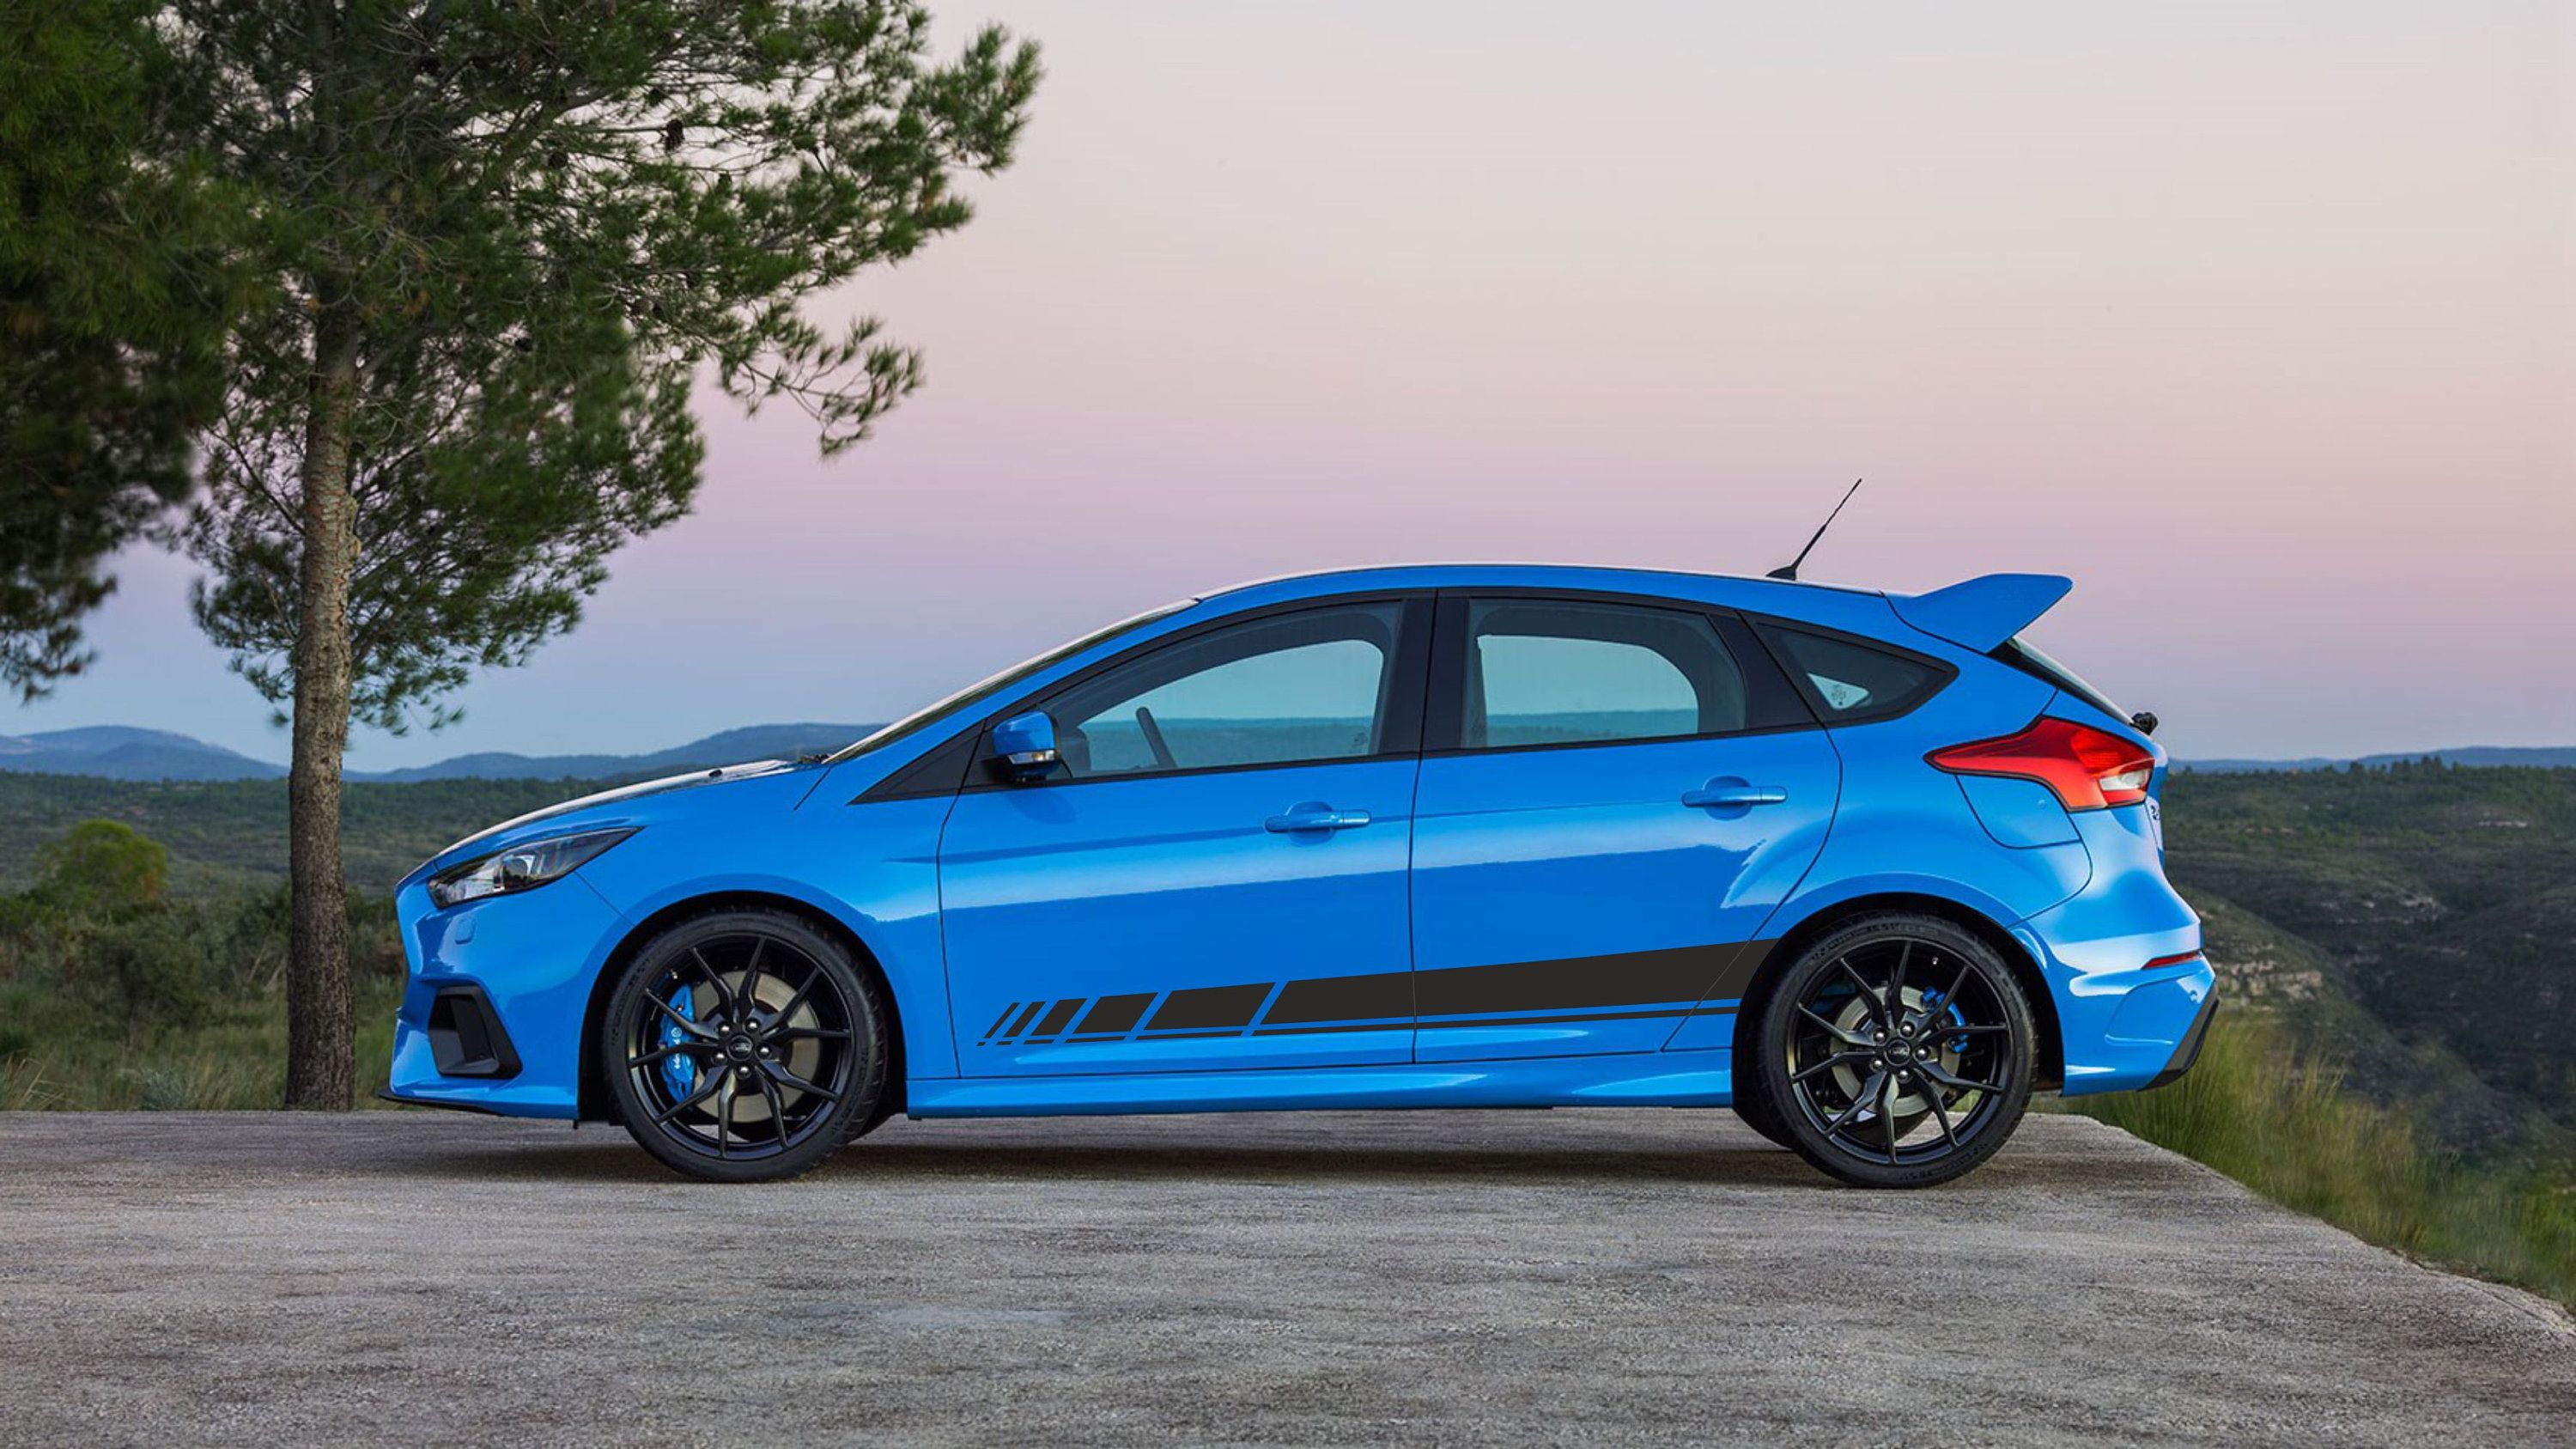 Ford Focus Sport Stripes Decals In 2020 Ford Focus Car Stripes